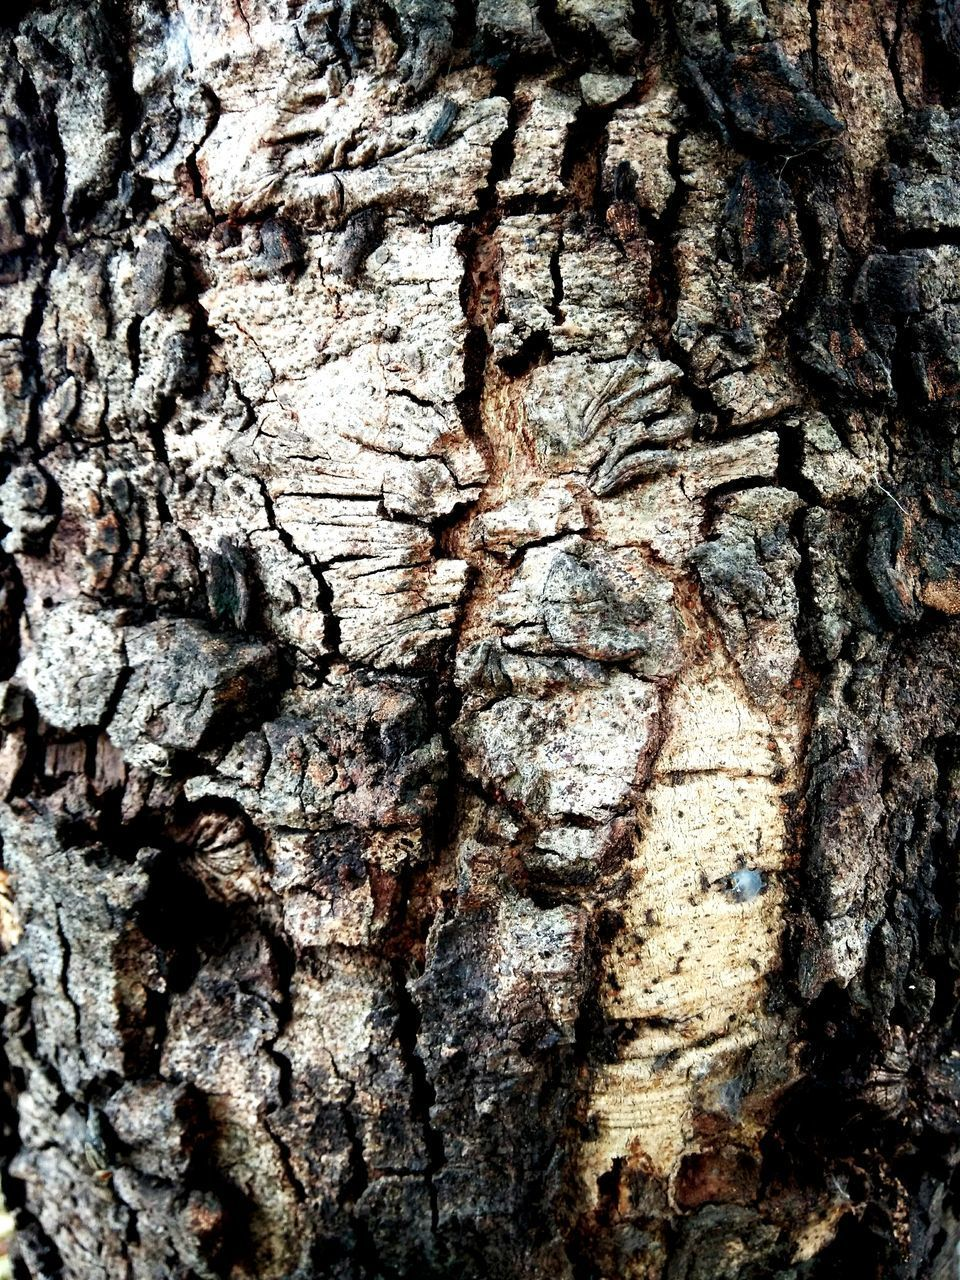 tree trunk, textured, tree, bark, rough, wood - material, close-up, backgrounds, full frame, cracked, no people, day, pattern, nature, tree stump, outdoors, knotted wood, tree ring